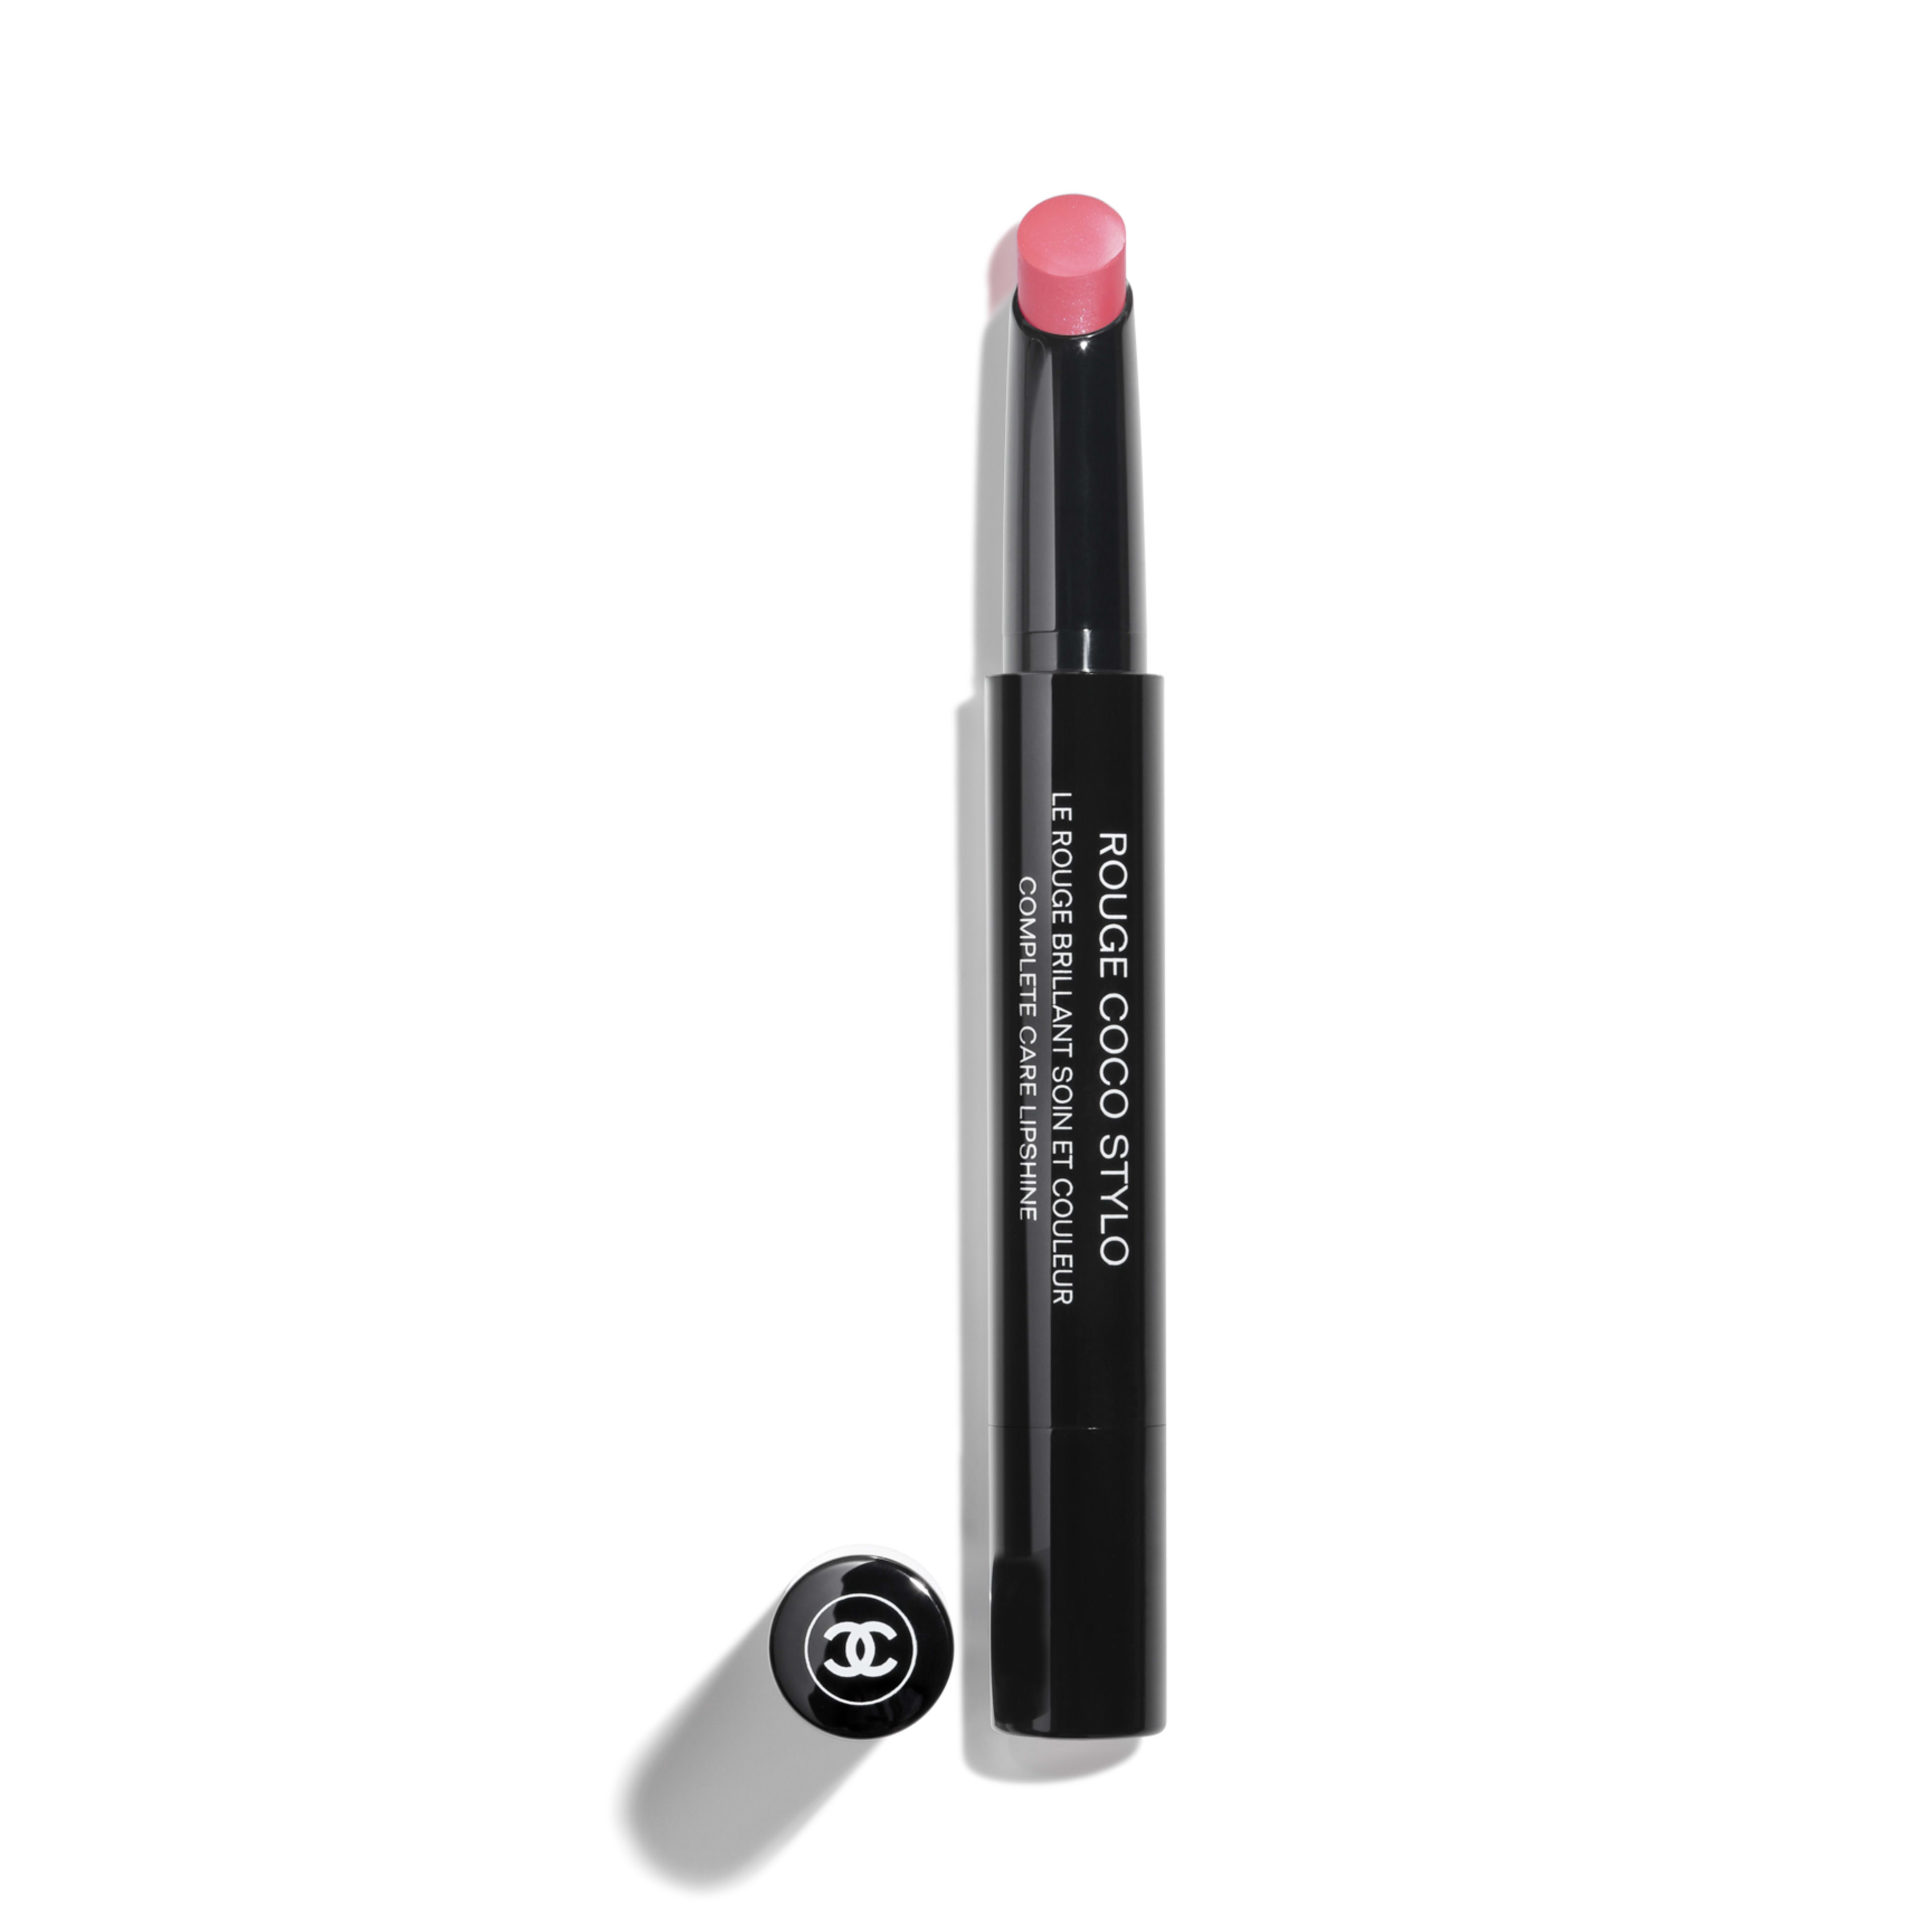 ROUGE COCO STYLO - makeup - 2g - มุมมองปัจจุบัน